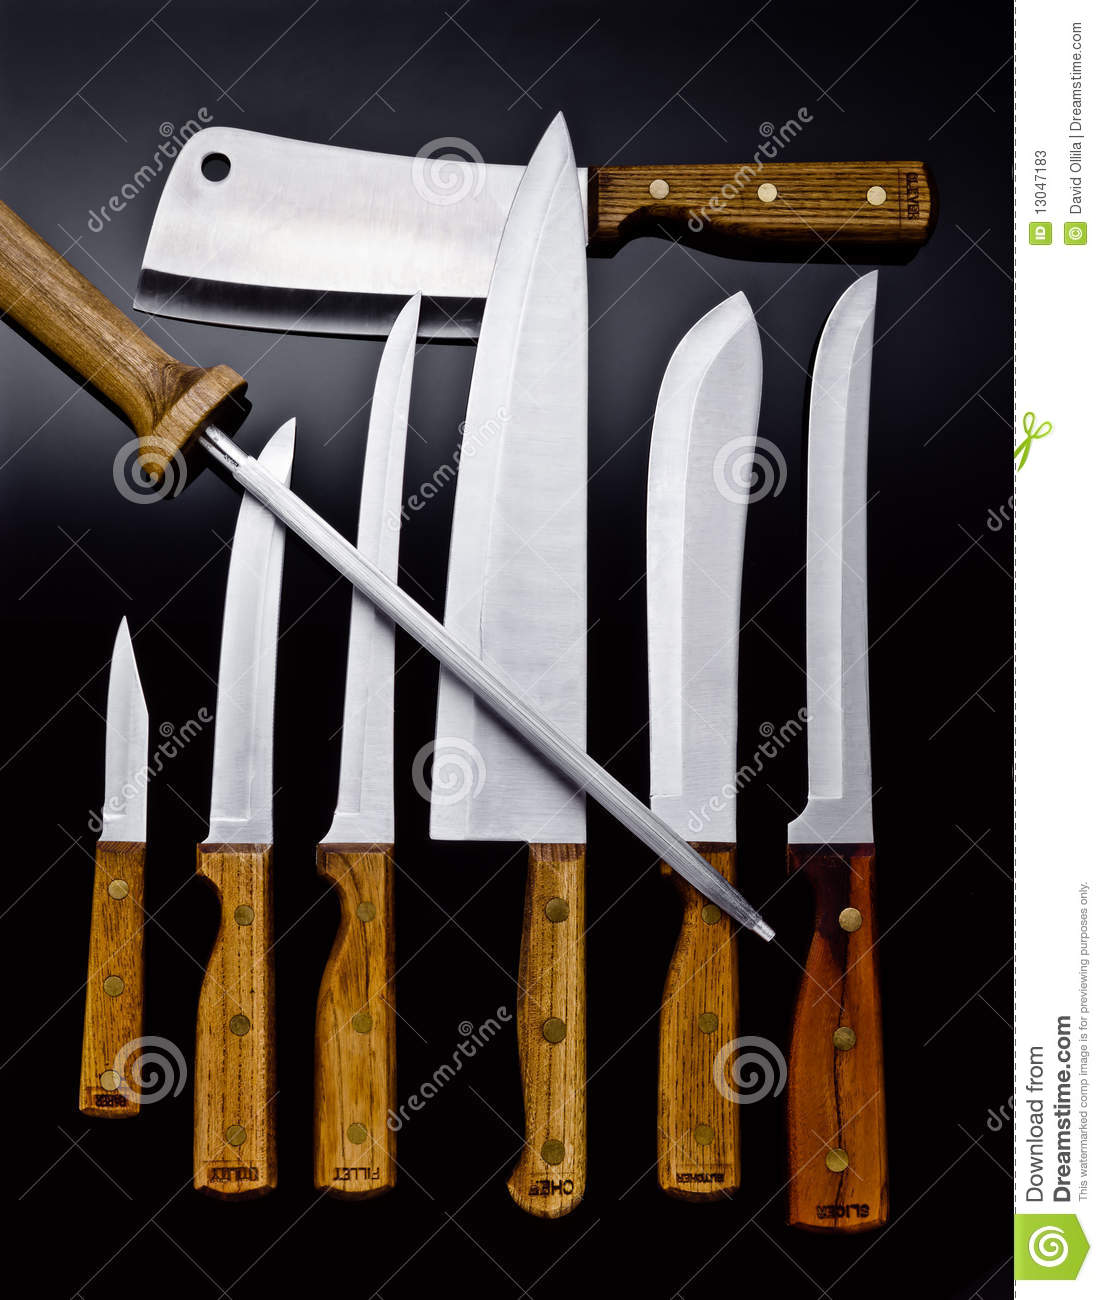 wood handle chef knives and cutlery stock photos image 13047183. Black Bedroom Furniture Sets. Home Design Ideas